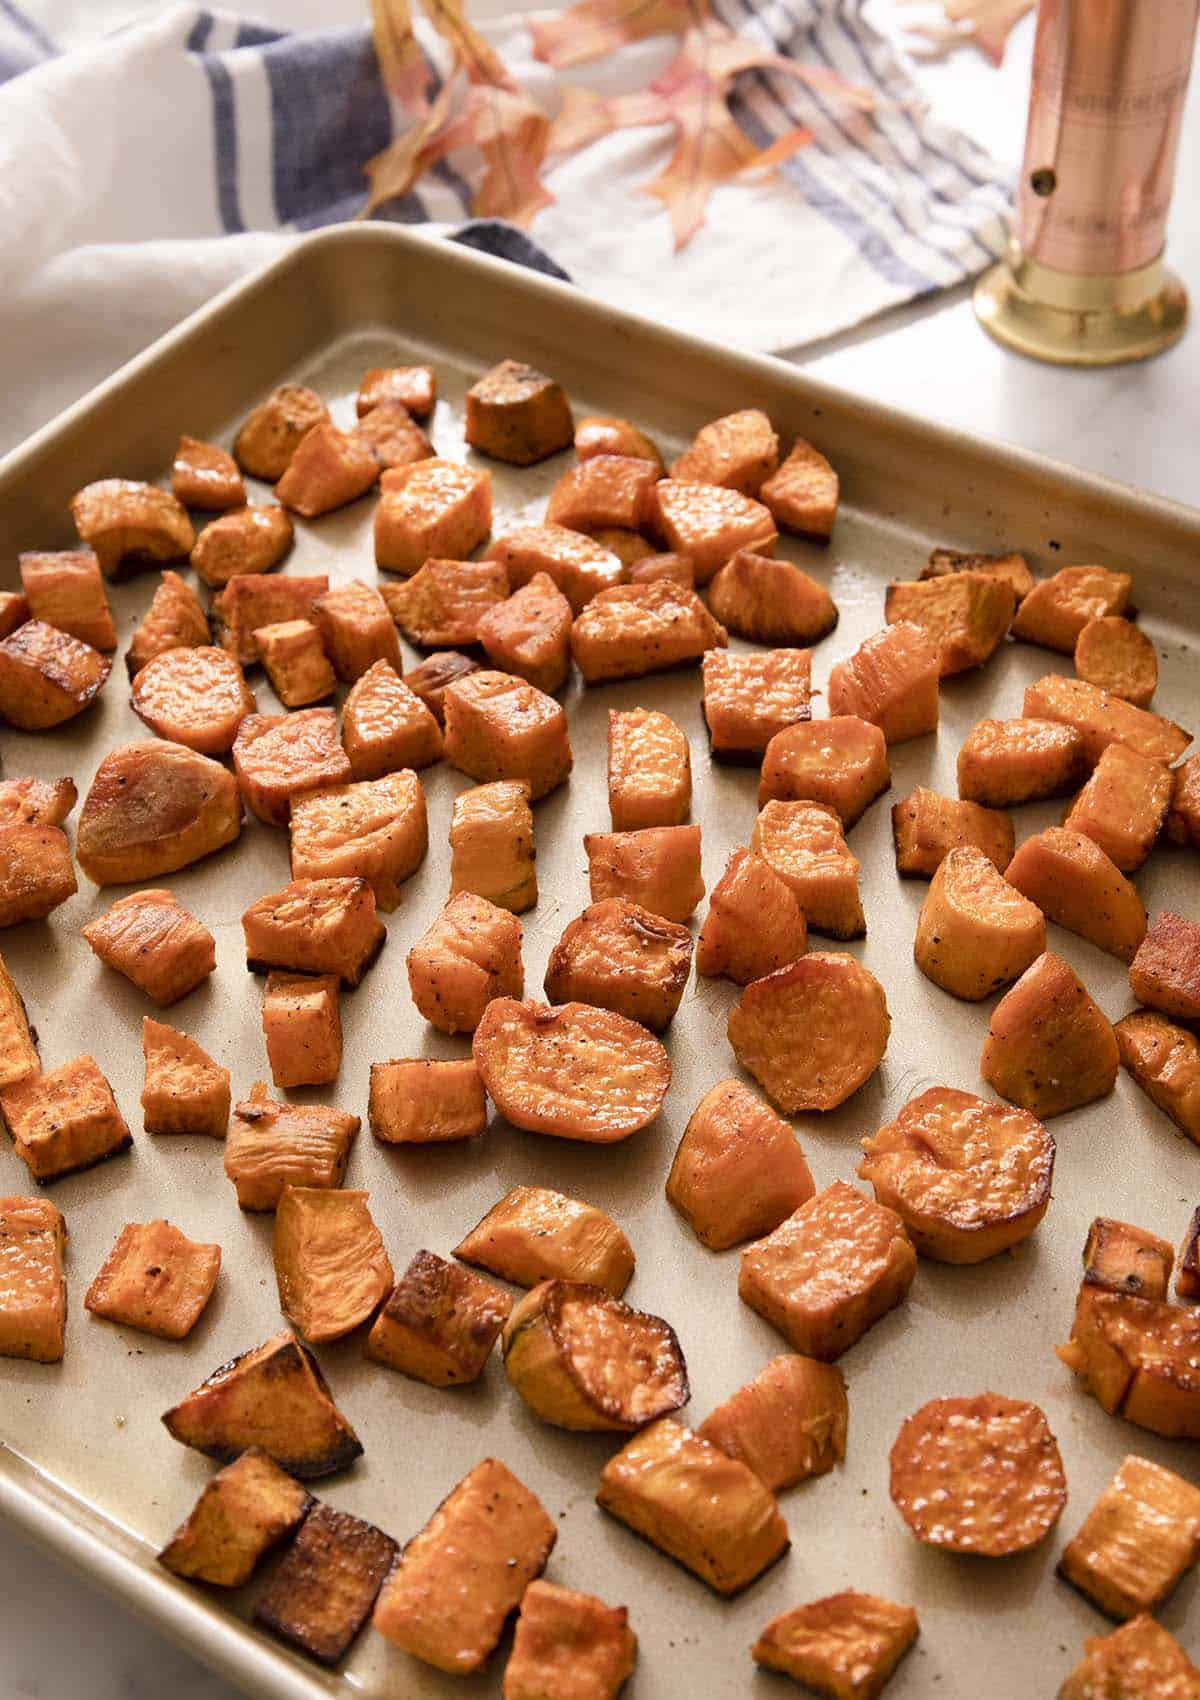 Roasted sweet potatoes on a golden baking sheet.